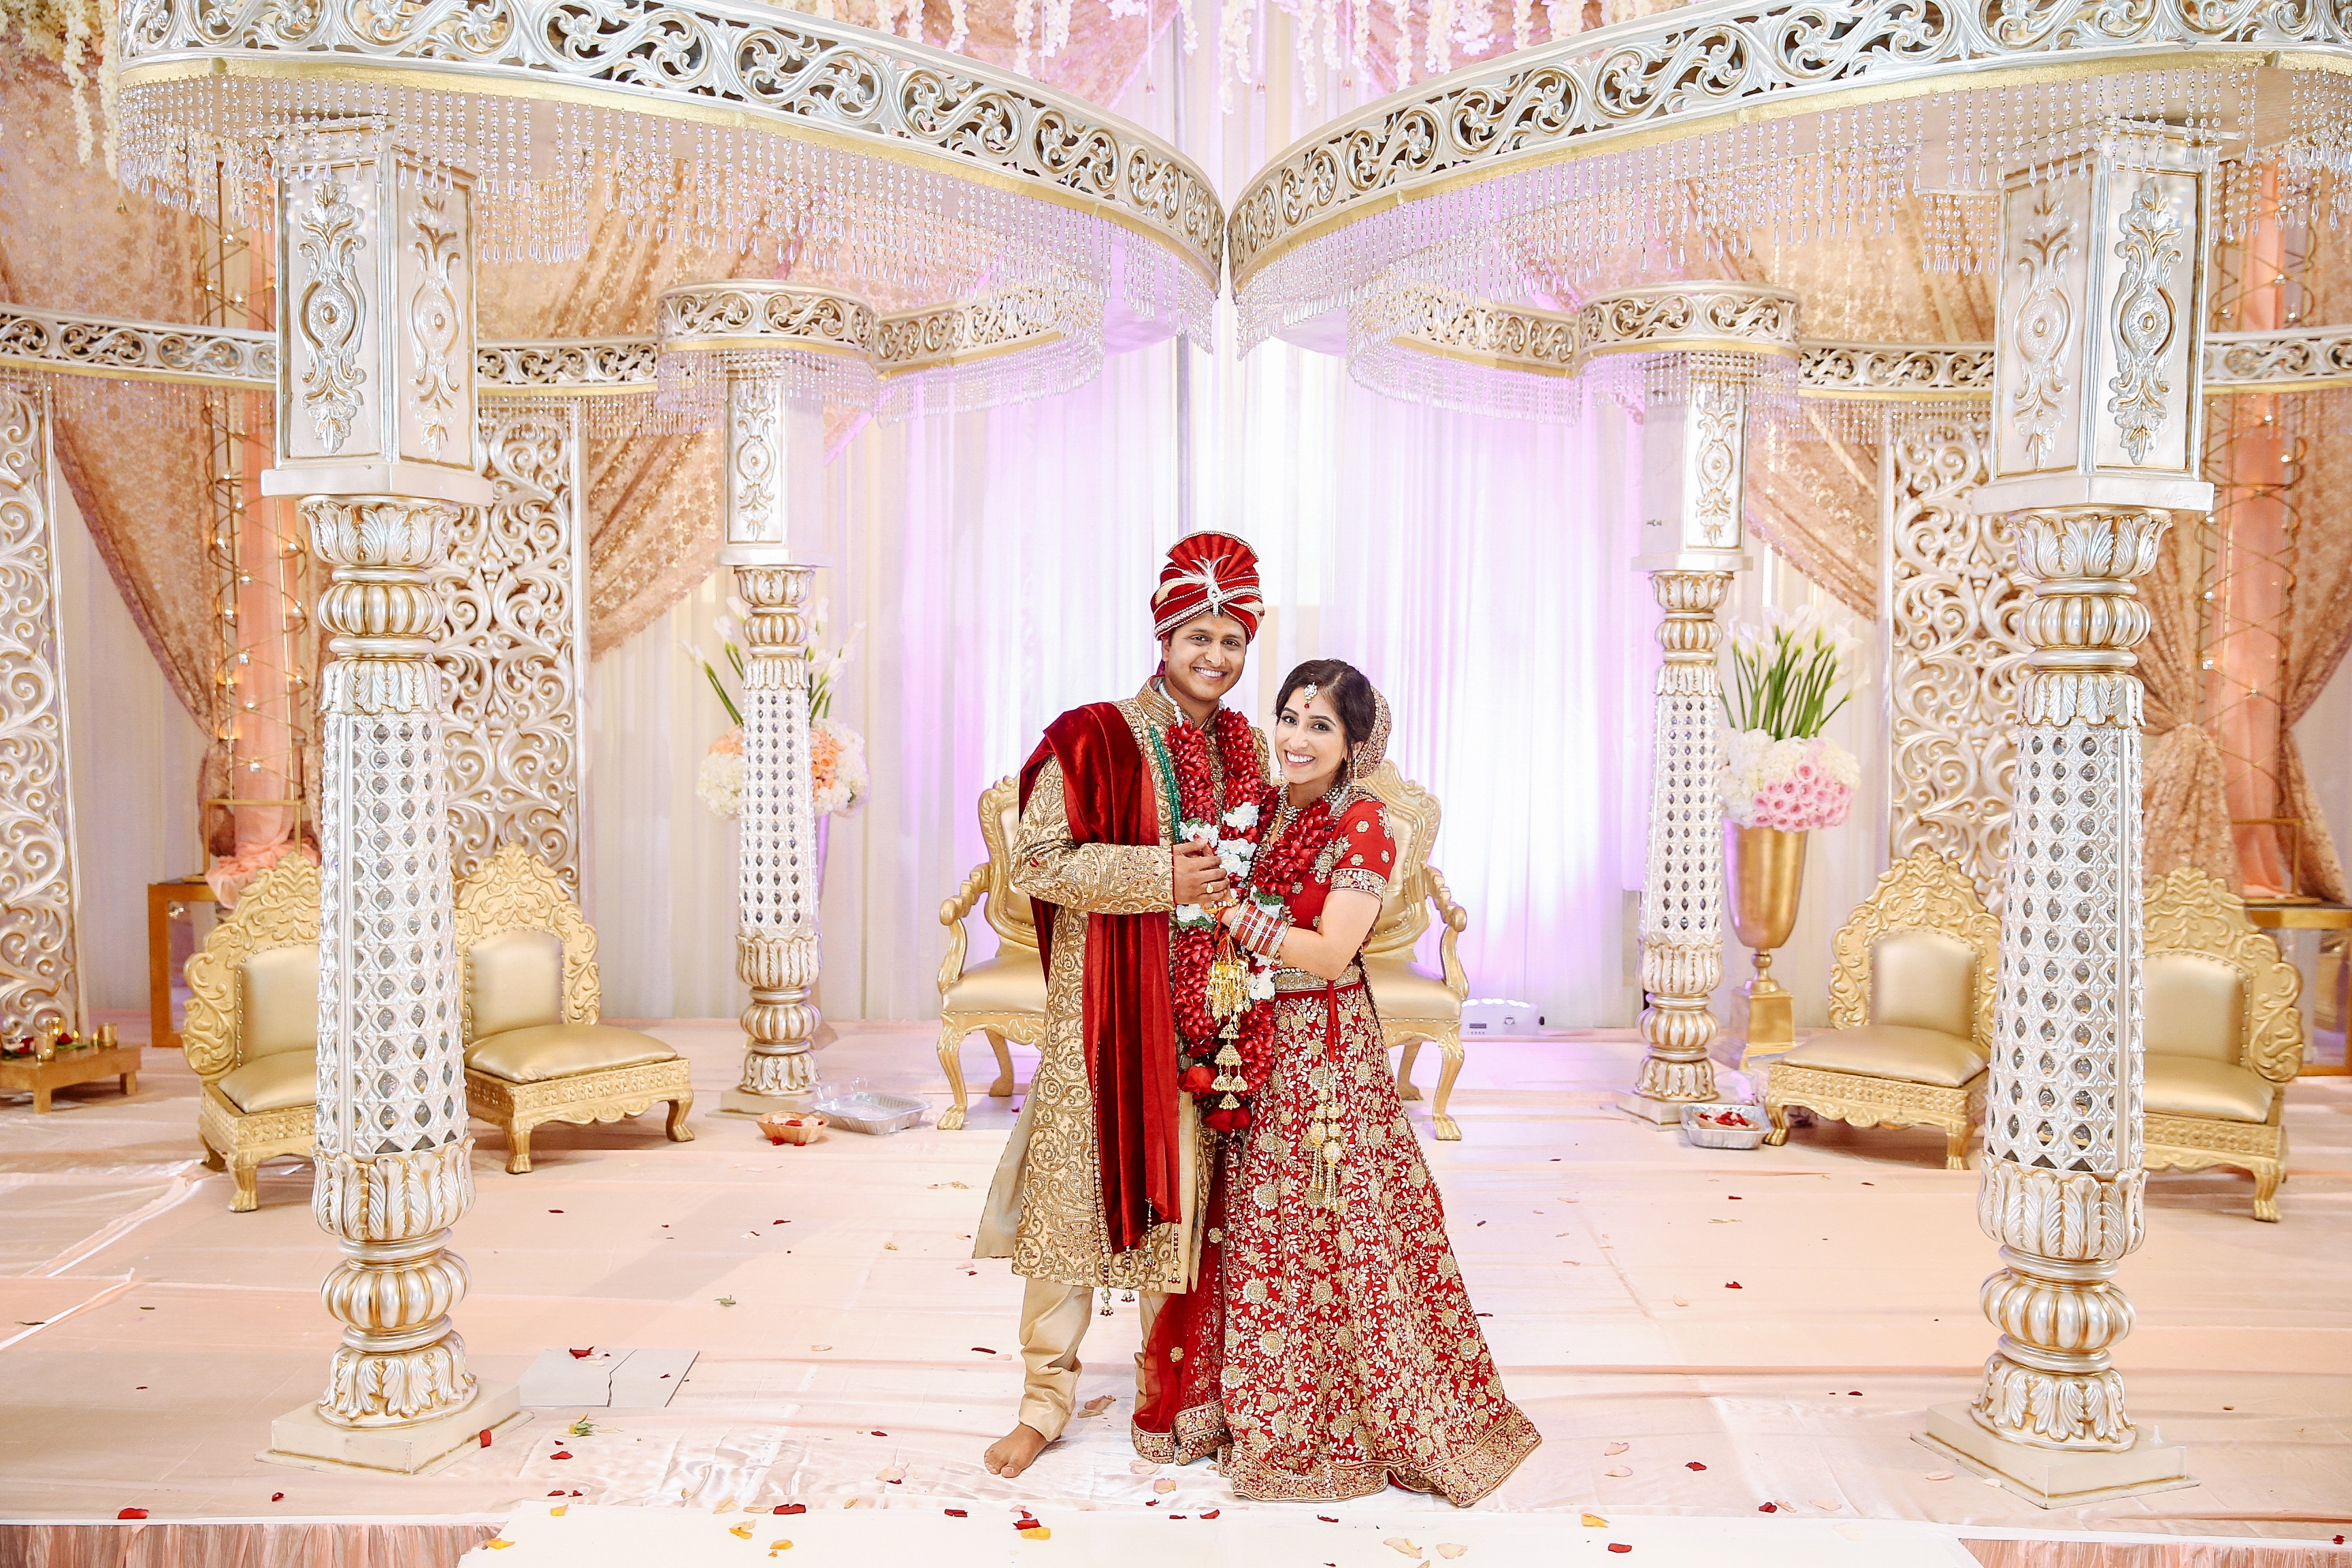 Indian Wedding Photography Tips To Document Traditional Wedding